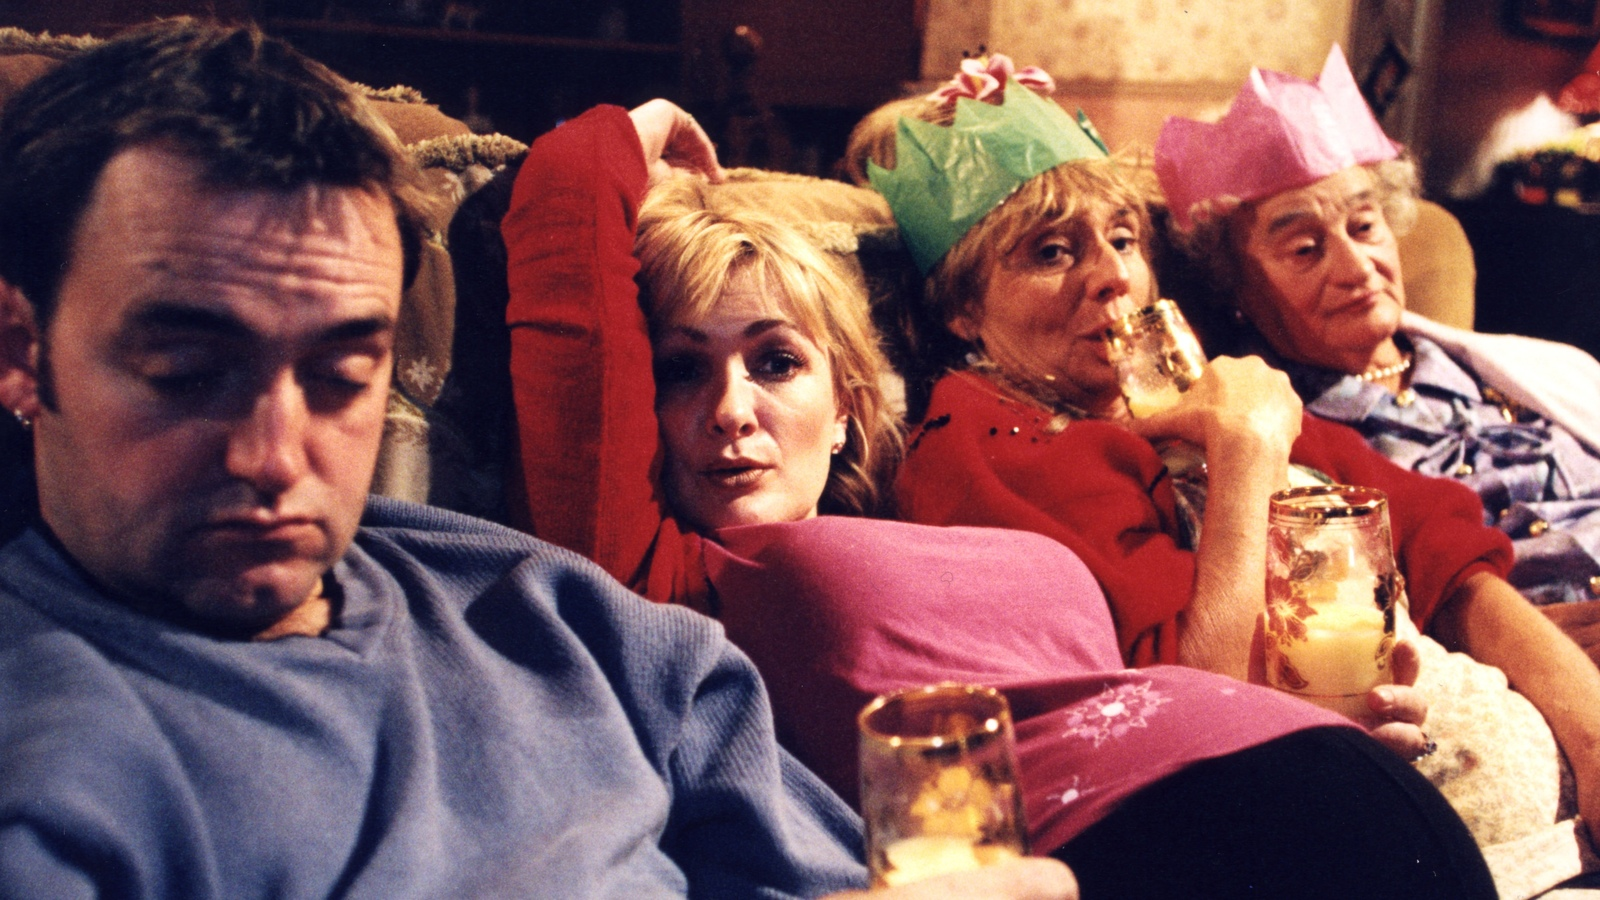 A Royal Christmas Cast.10 Things You Didn T Know About The Royle Family The Royle